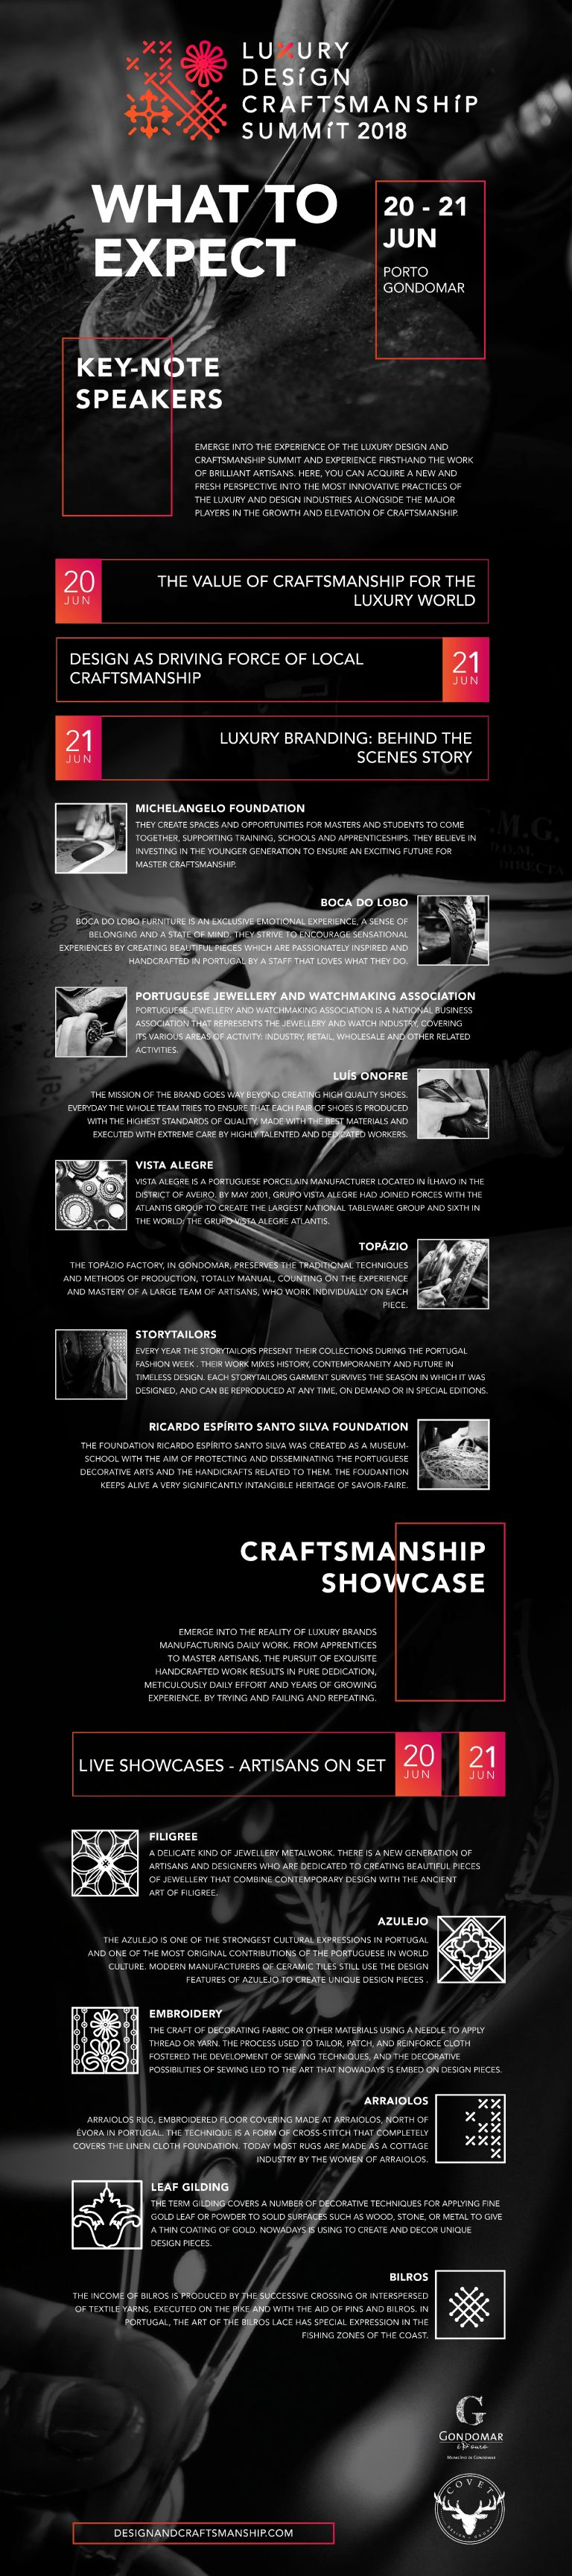 Time To Know More About The Luxury Design and Craftmanship 2018! 3 luxury design and craftmanship 2018 Time To Know More About The Luxury Design and Craftmanship 2018! Time To Know More About The Luxury Design and Craftmanship 2018 3